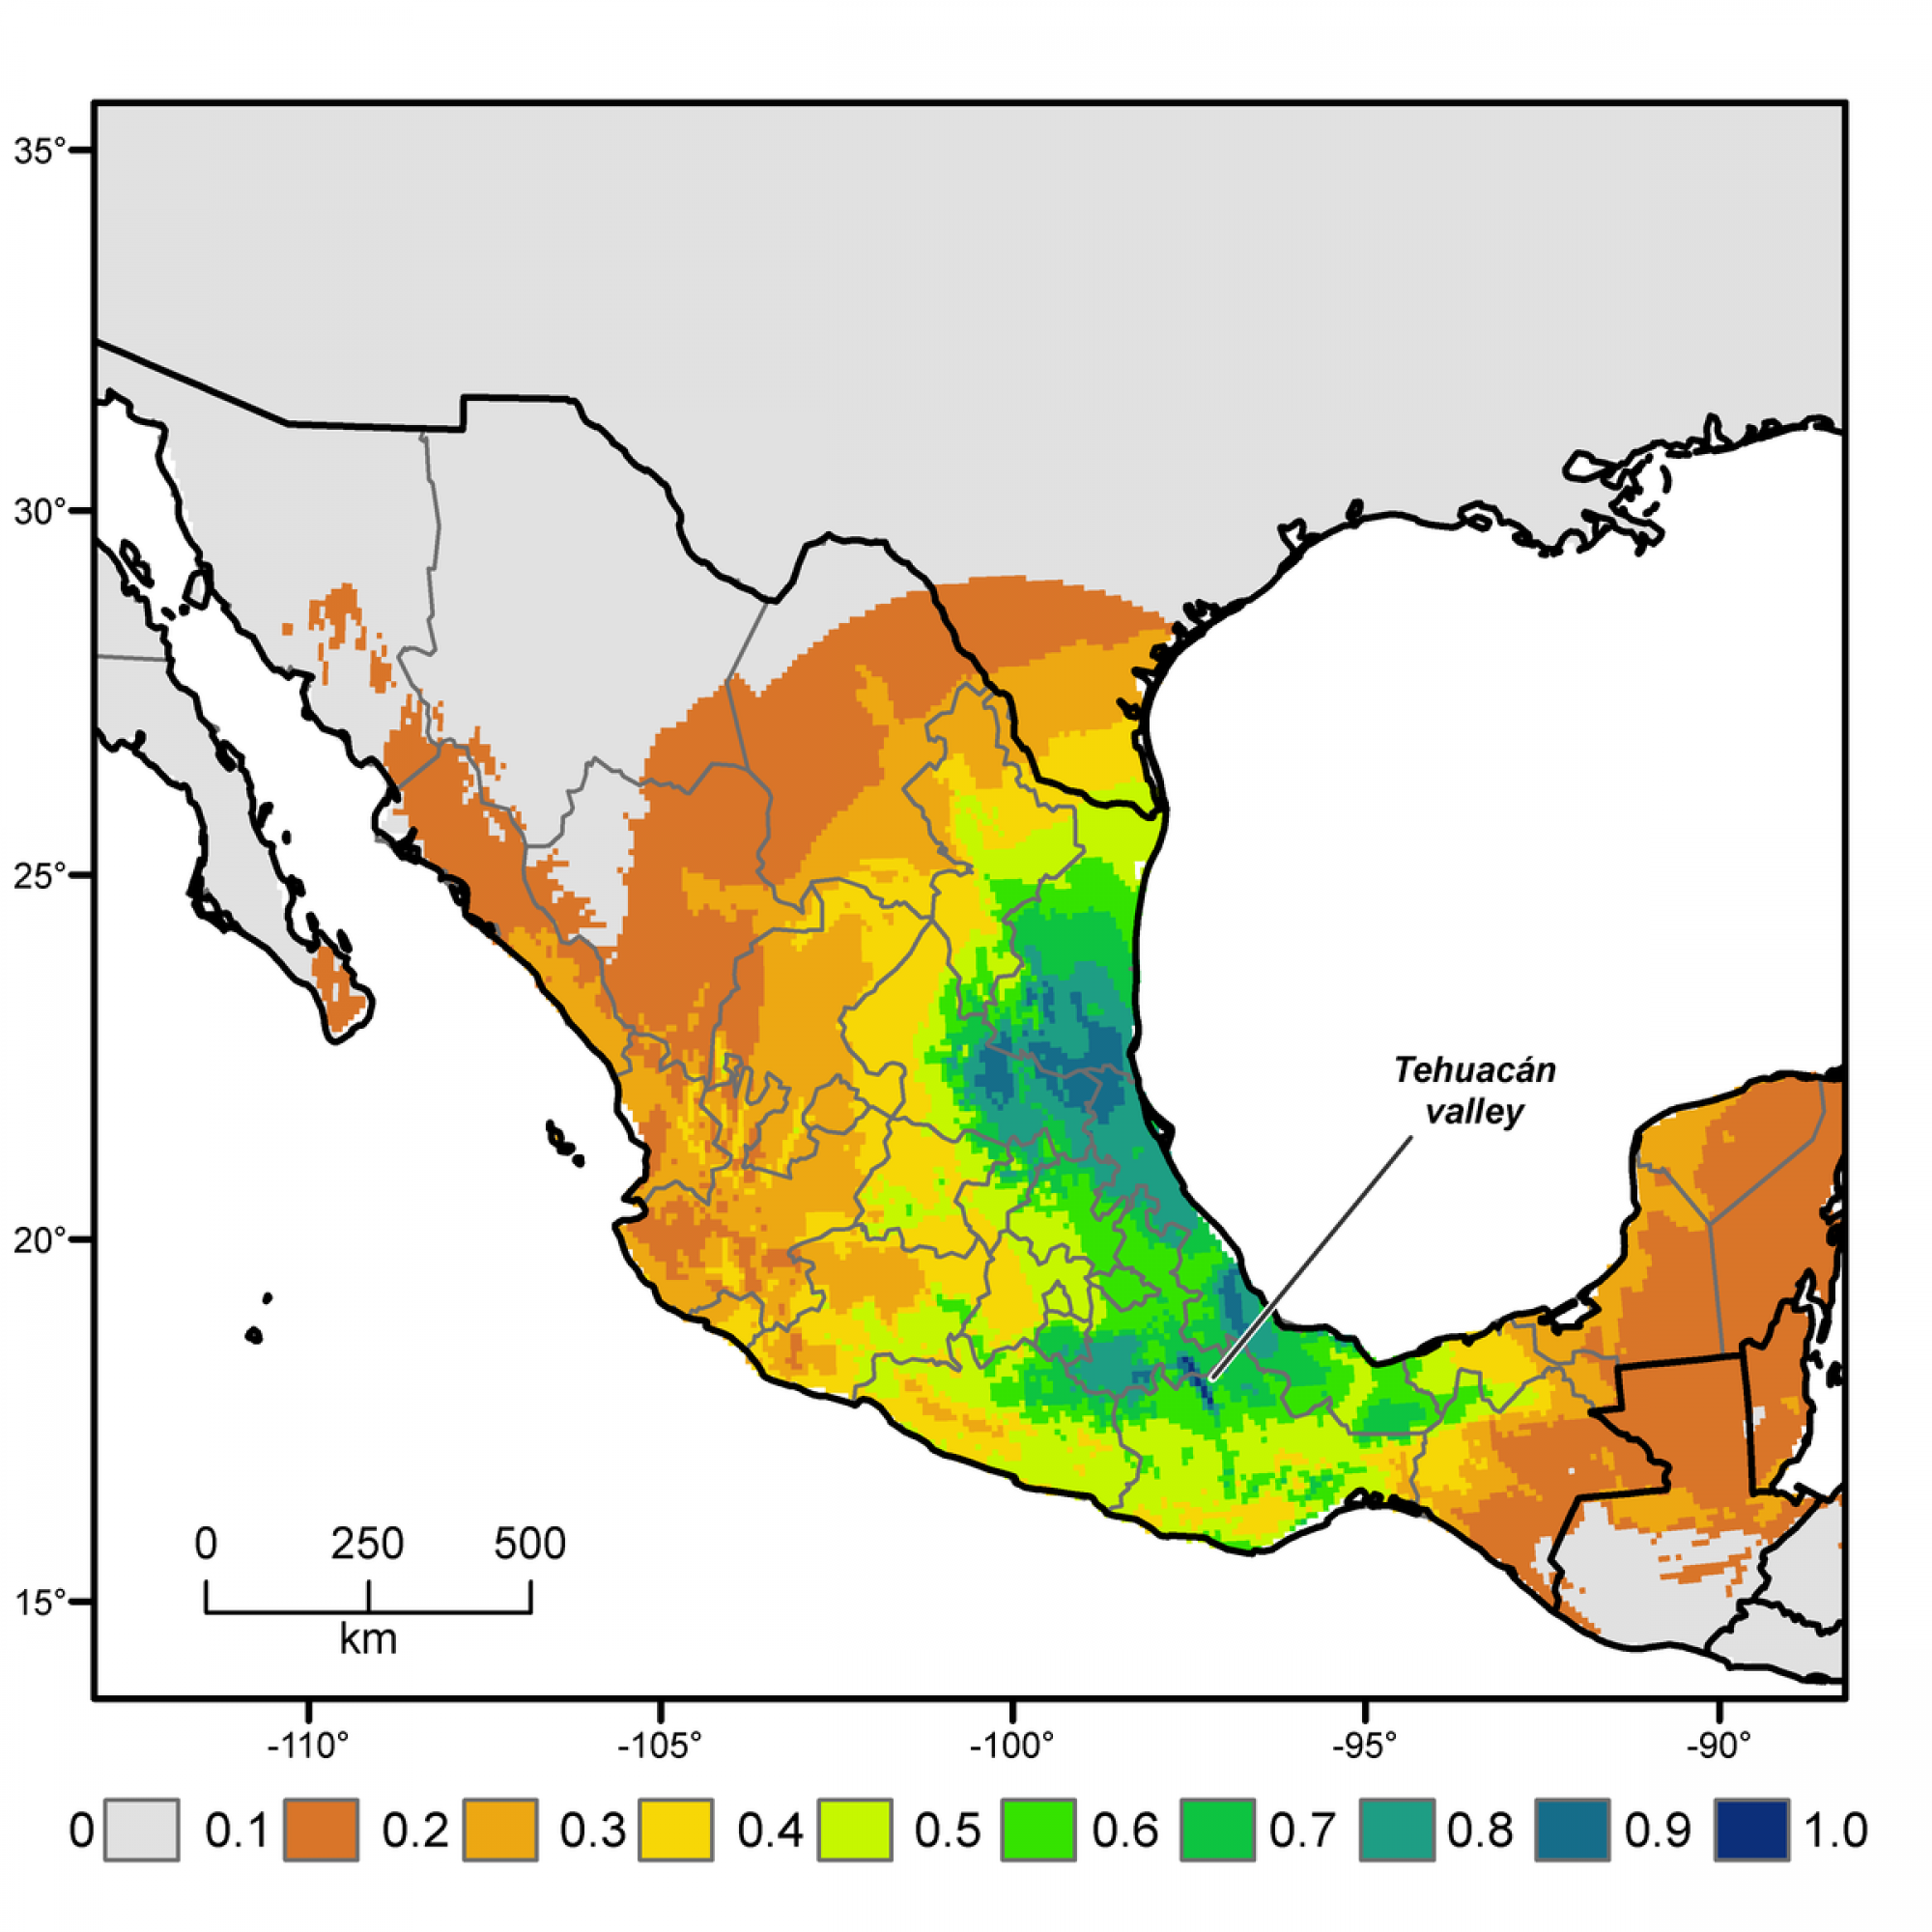 The international, interdisciplinary team determined that the domesticated chili pepper's region of origin extending from southern Puebla and northern Oaxaca to southeastern Veracruz, and is further south than was previously thought.